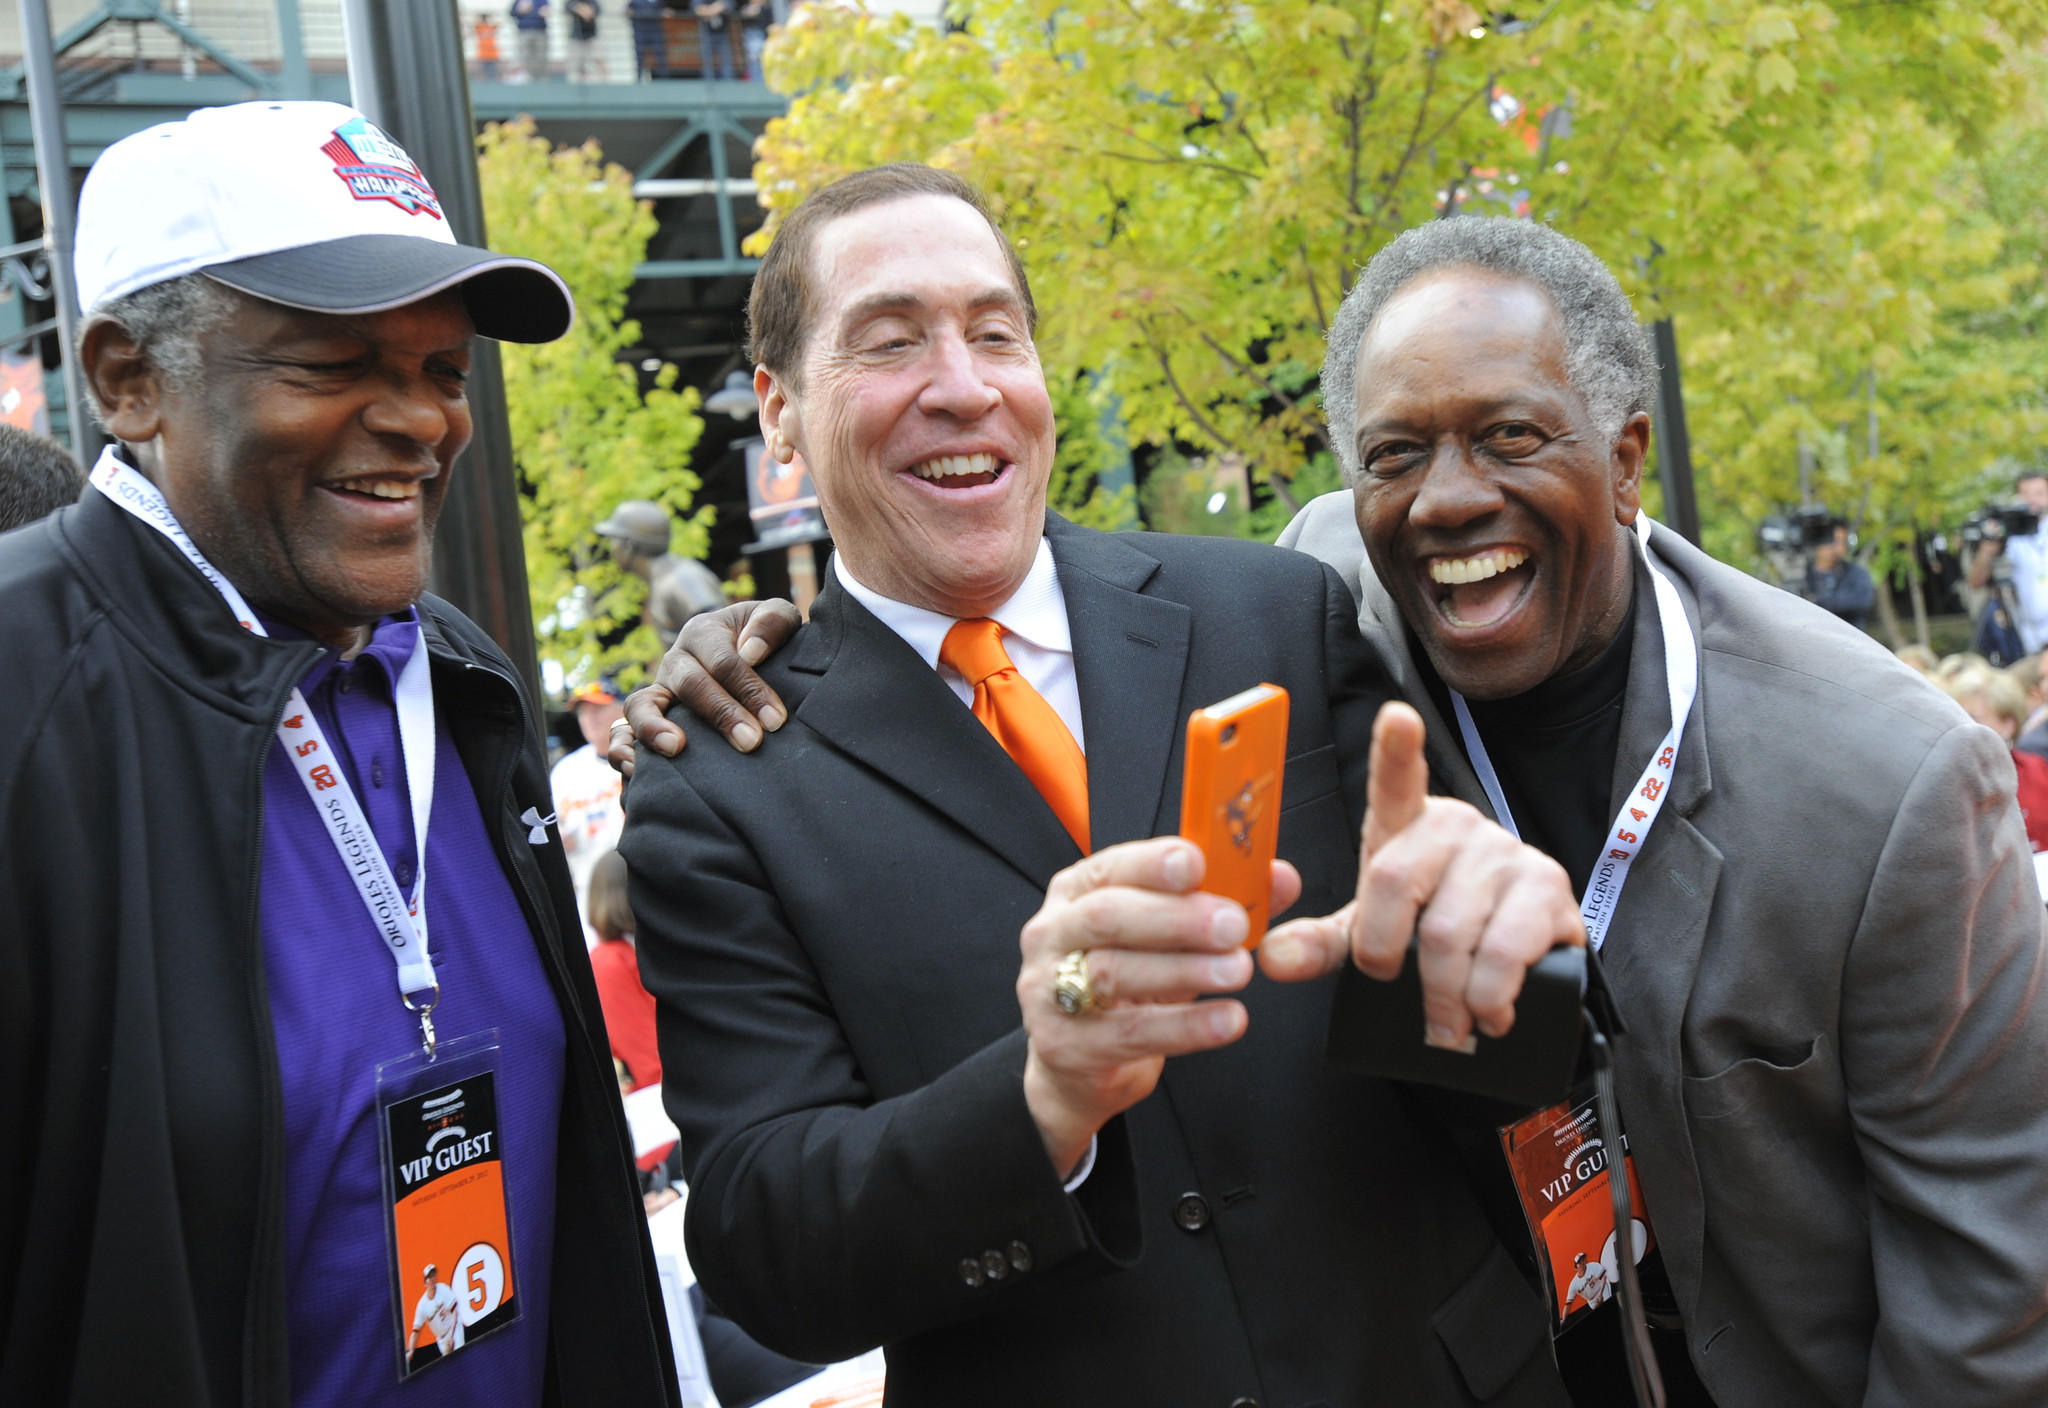 Former Colt, Lenny Moore, Roy Firestone and Paul Blair share a laugh before the unveiling of Brooks Robinson's statue. The Baltimore Orioles unveil the Brooks Robinson statue at Camden Yards today before the Orioles vs. Boston Red Sox baseball game.